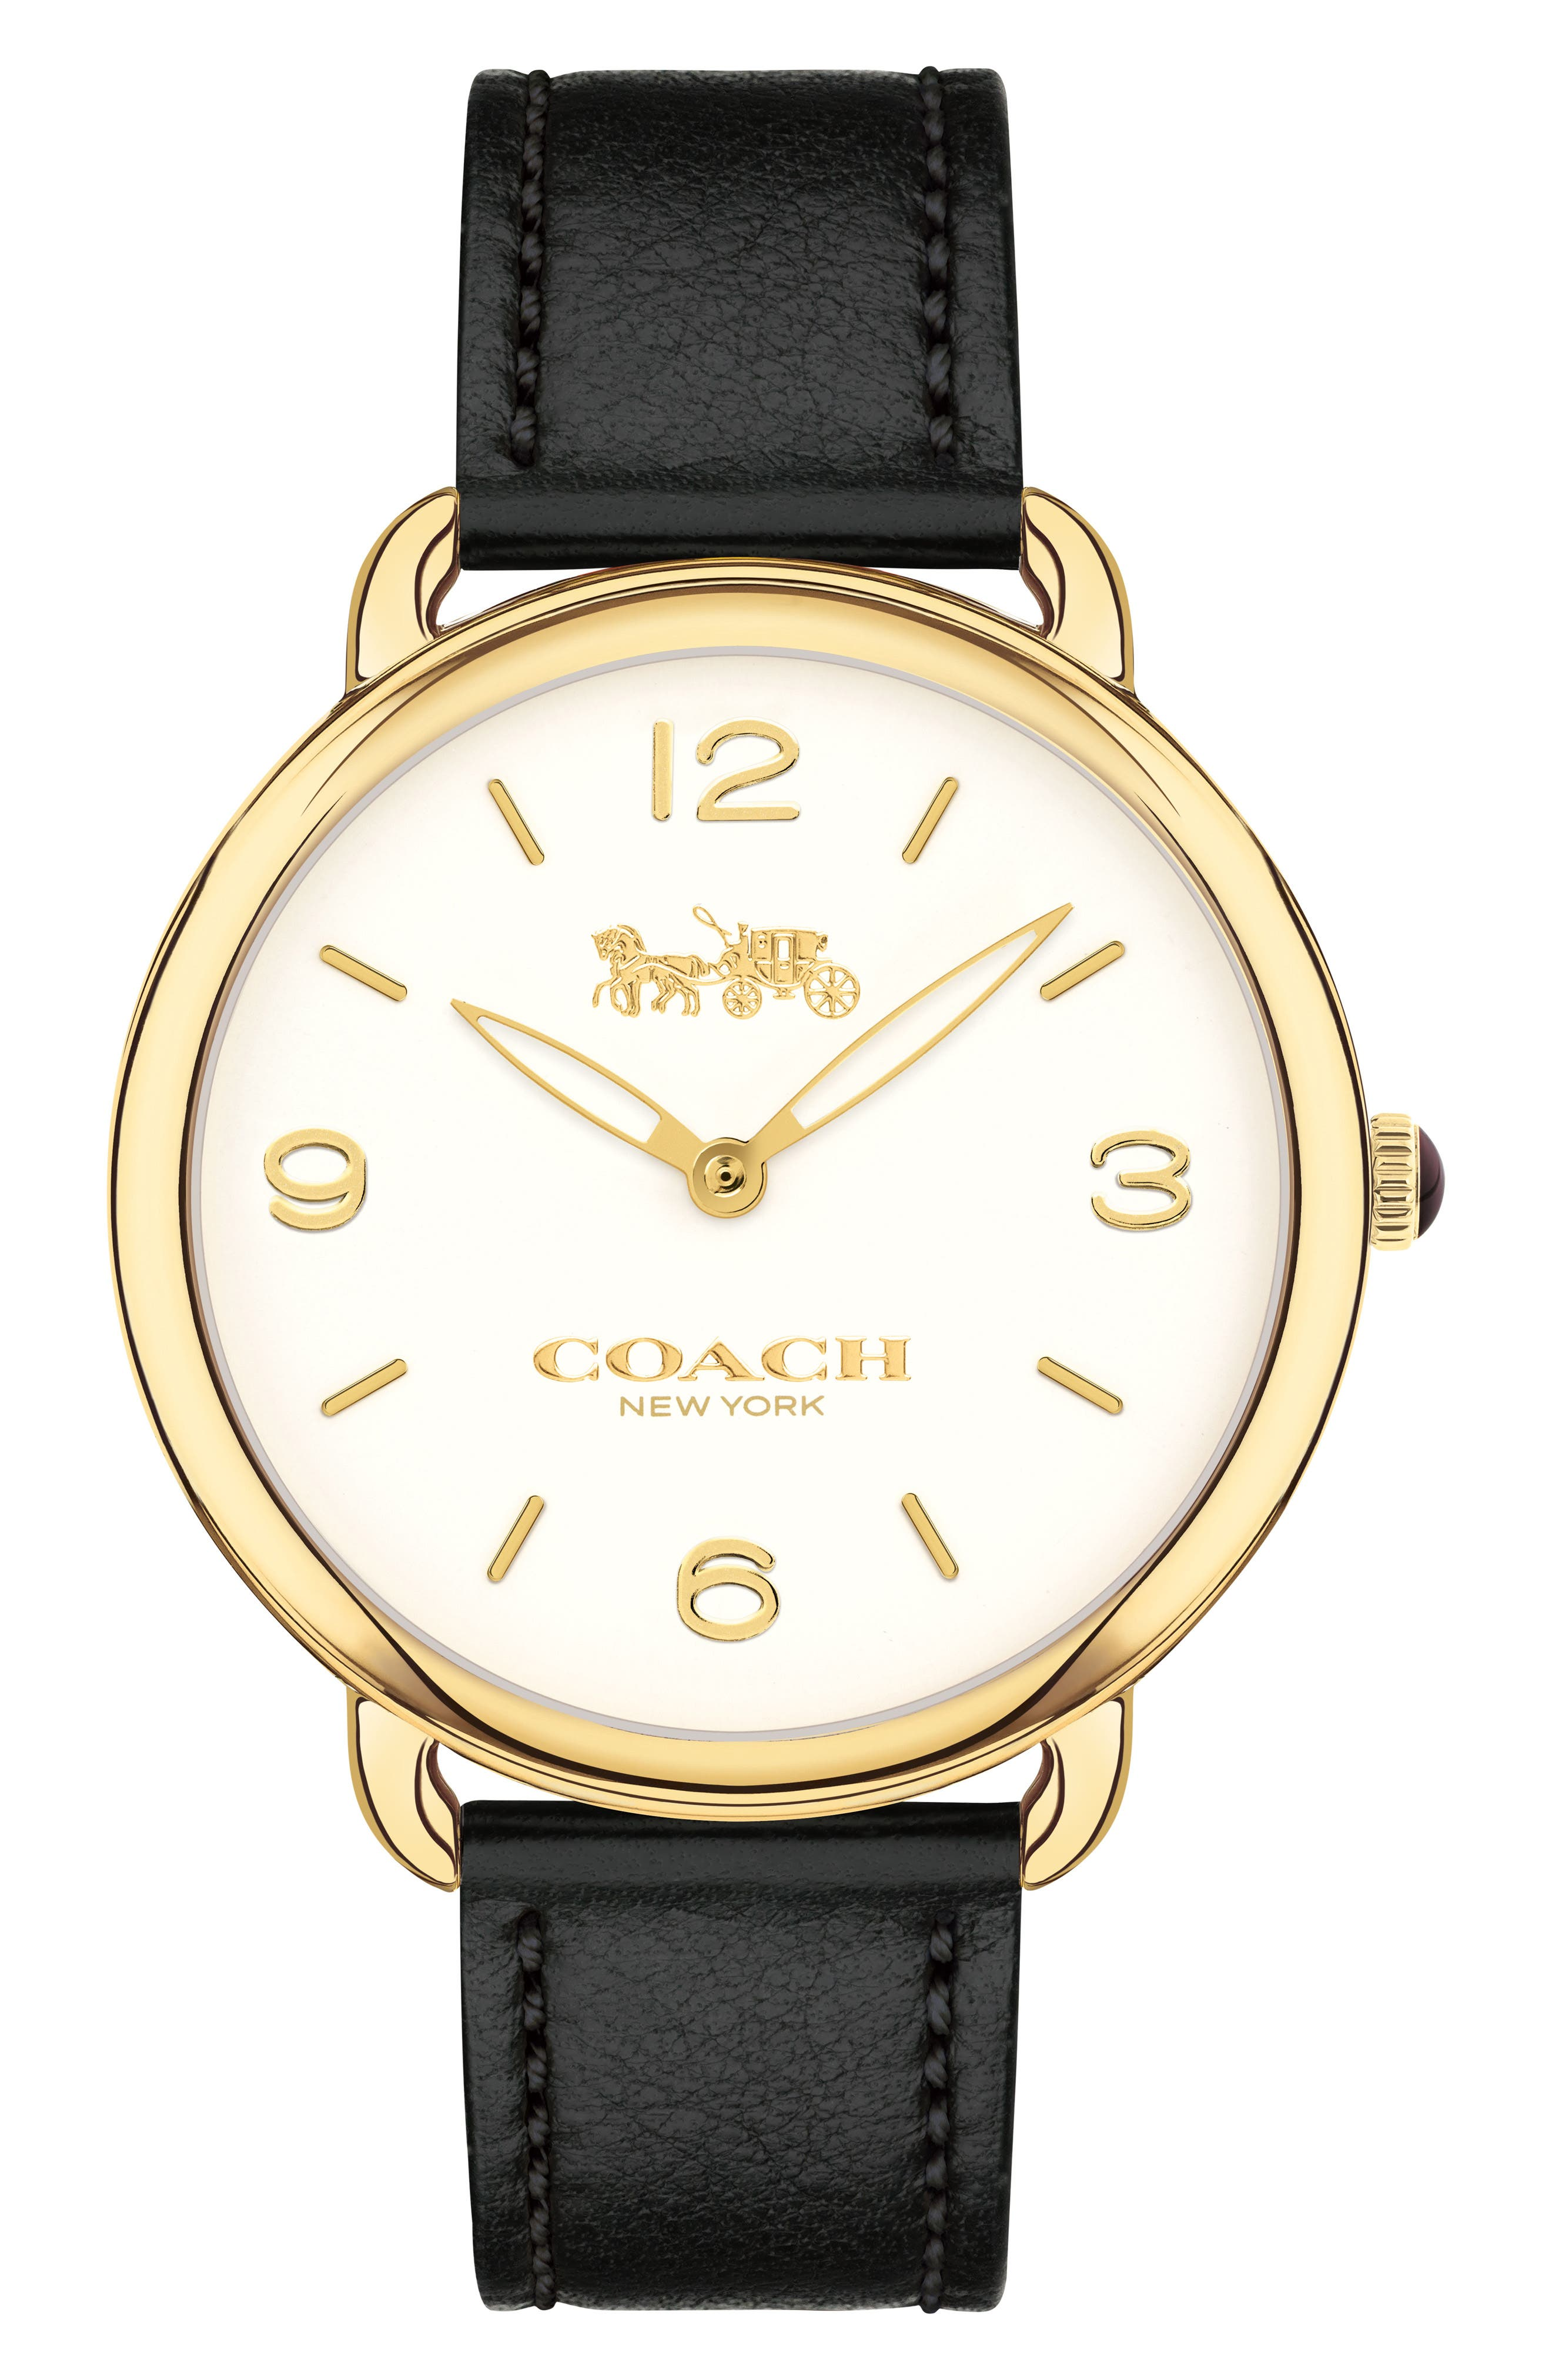 COACH,                             Delancey Slim Leather Strap Watch, 36mm,                             Main thumbnail 1, color,                             001